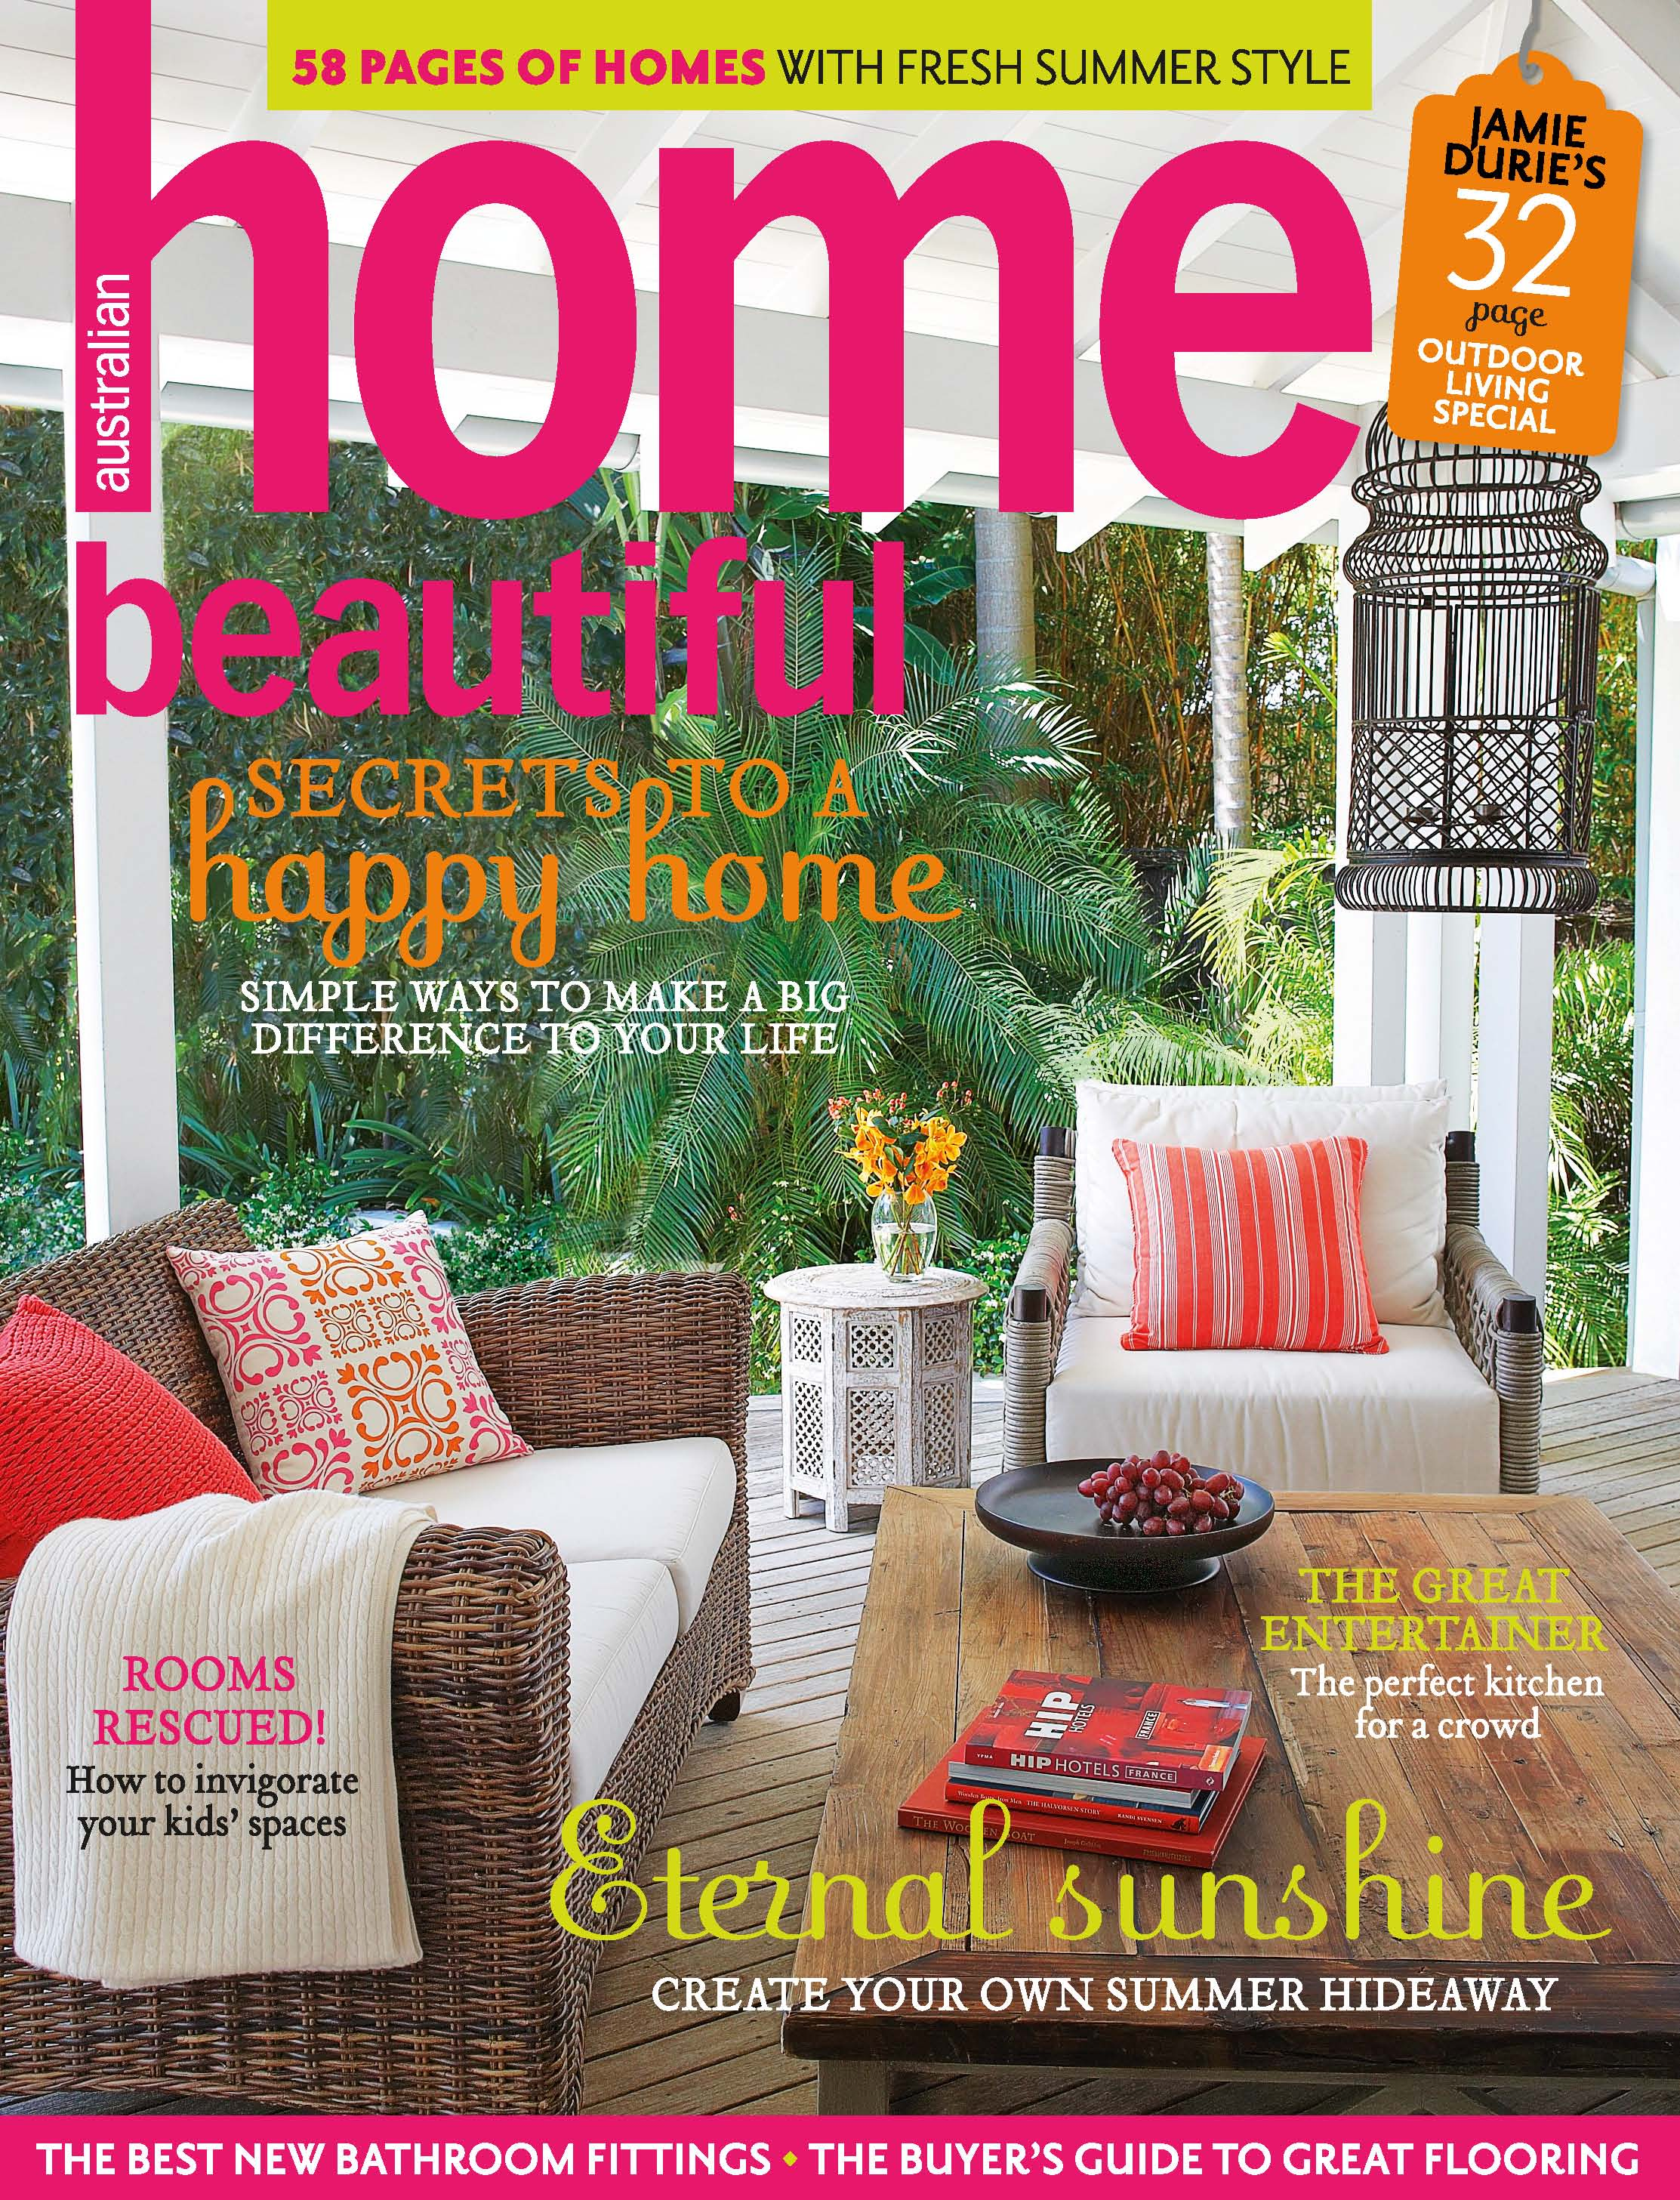 aus-home-beautiful-feb2010-cover.jpg